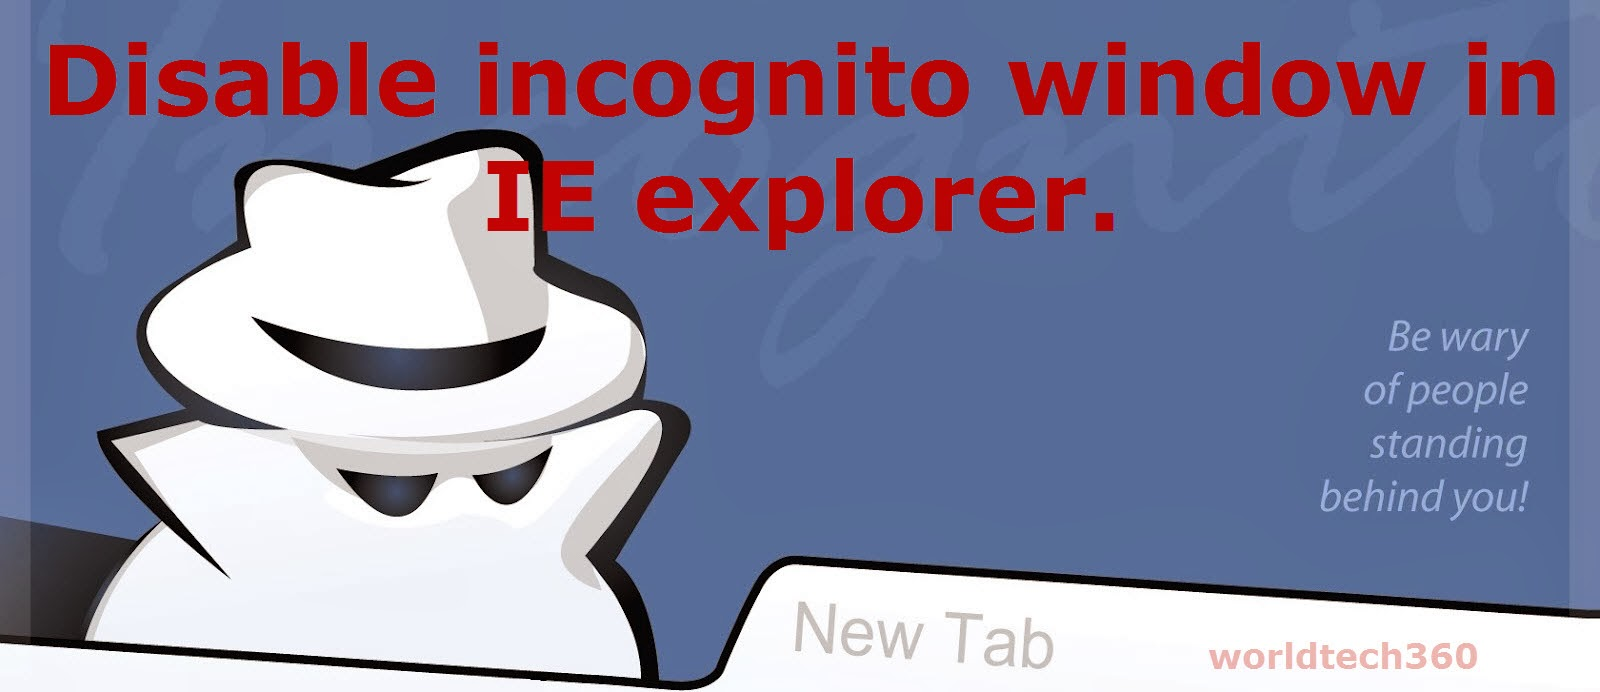 Enable Cookies Internet Explorer 11 Windows 7 Enable Cookies Internet  Explorer 11 Windows 7 Imagermation How